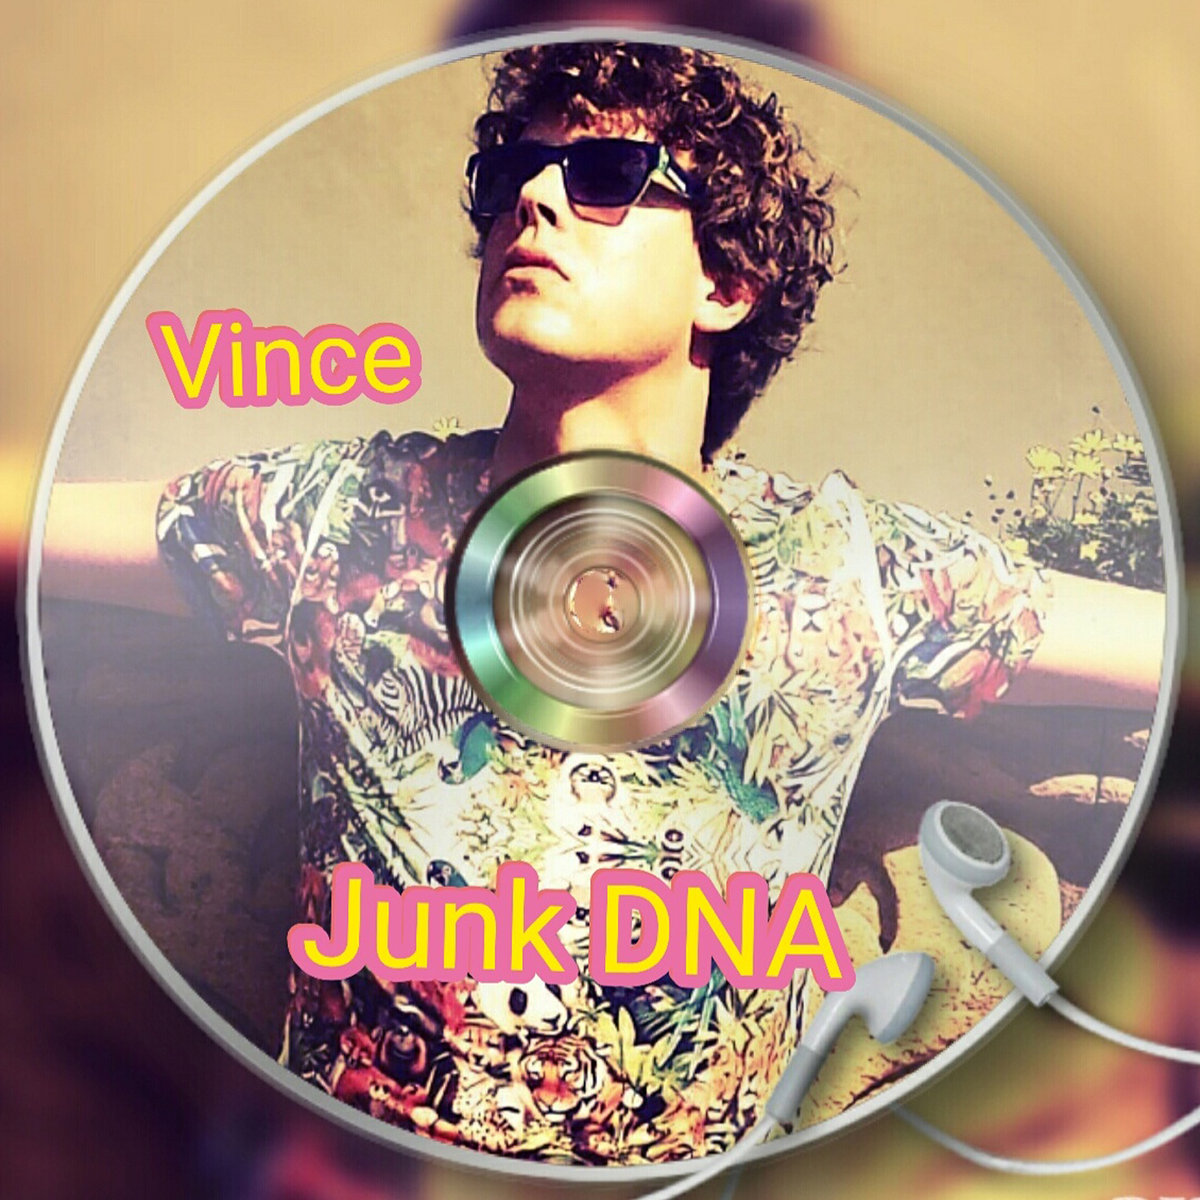 Vince - Junk DNA @ 'Junk DNA' album (pop, pop punk)